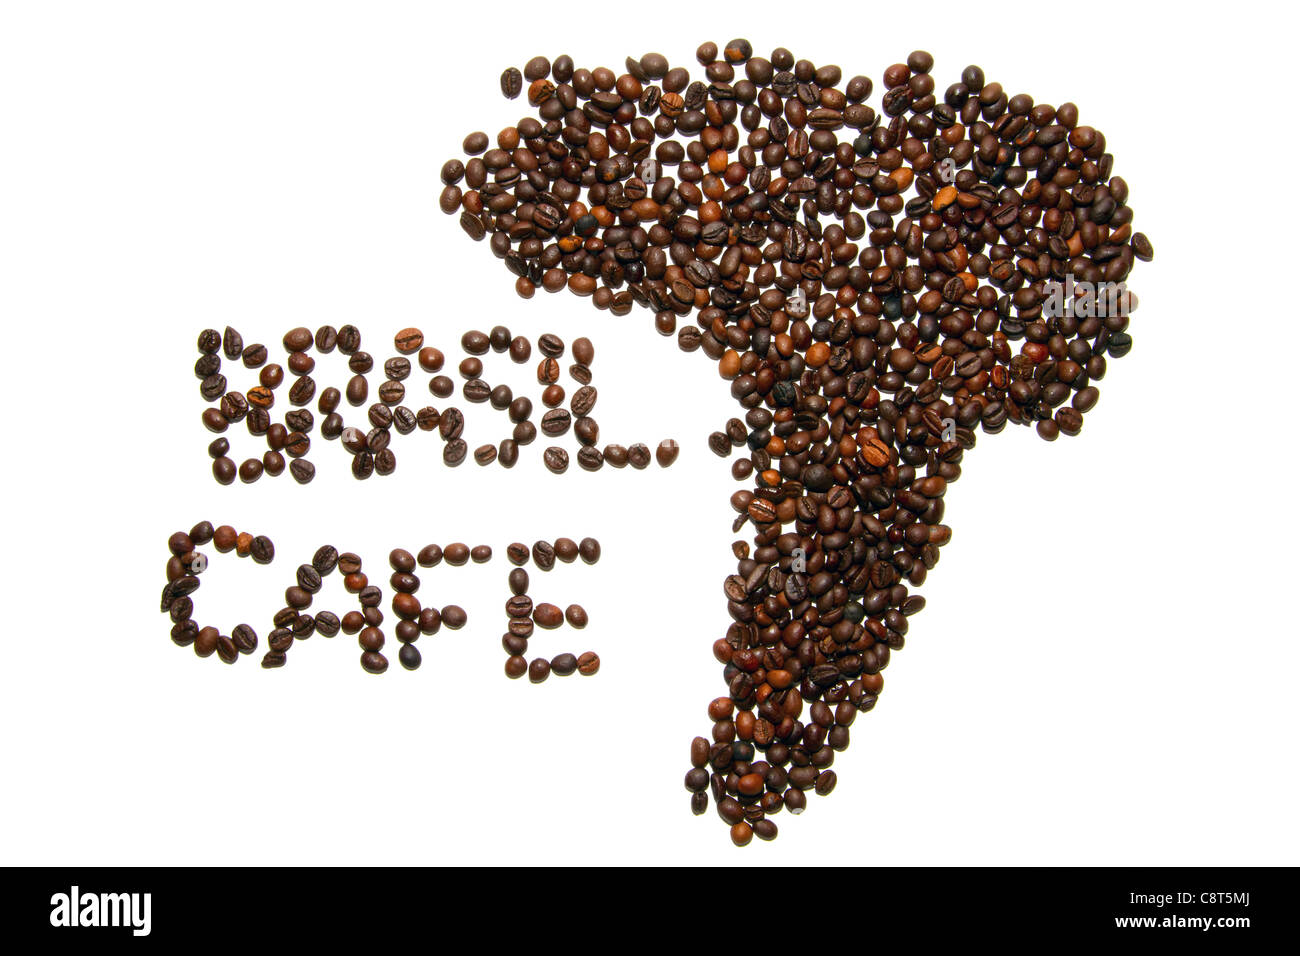 Brasil Map Cut Out Stock Images & Pictures - Alamy